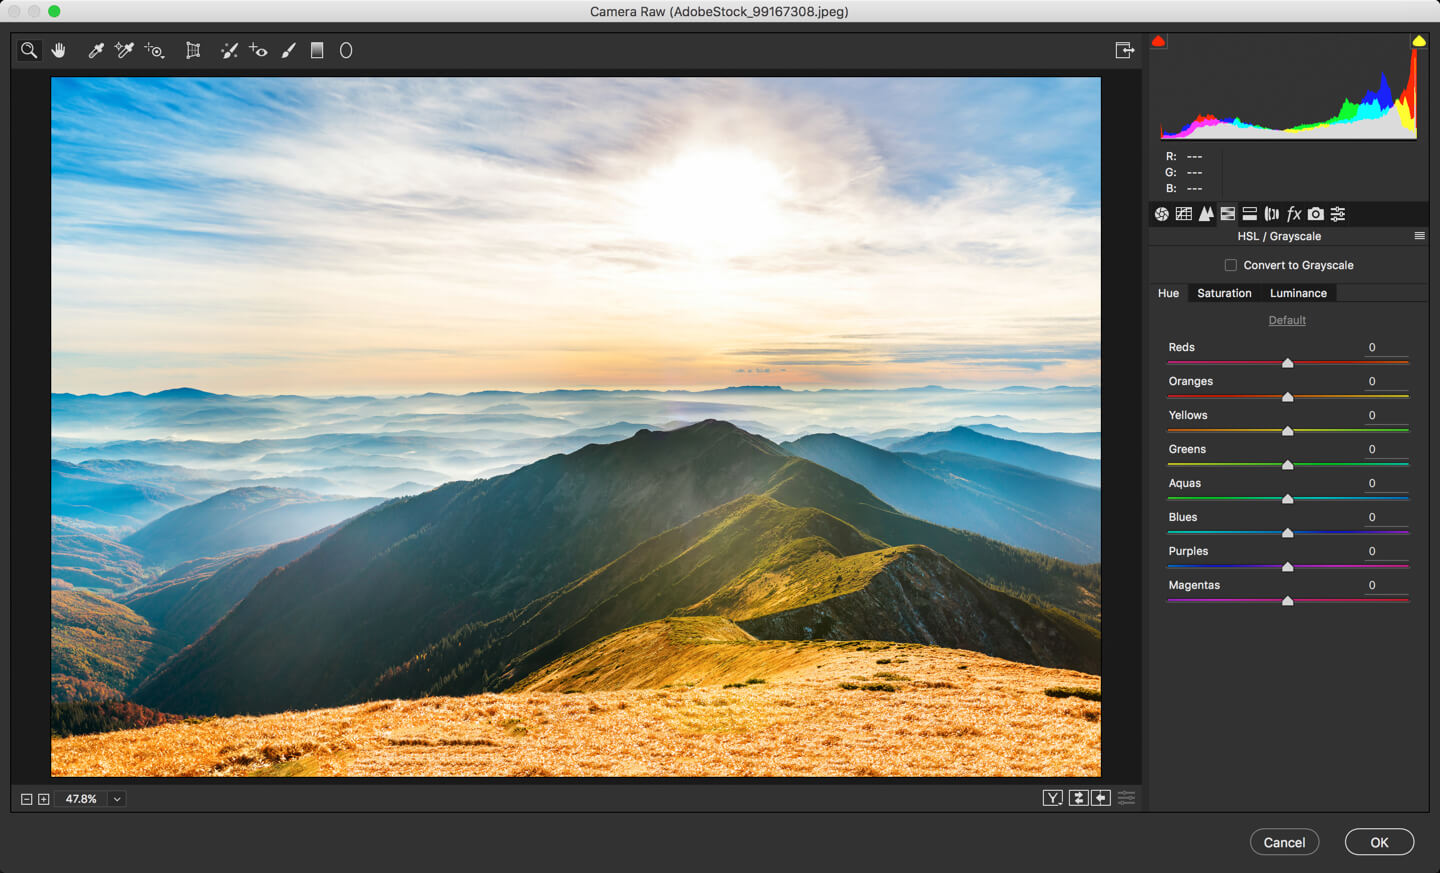 1 - DAY 23 – THE CAMERA RAW FILTER IN PHOTOSHOP: PART 2